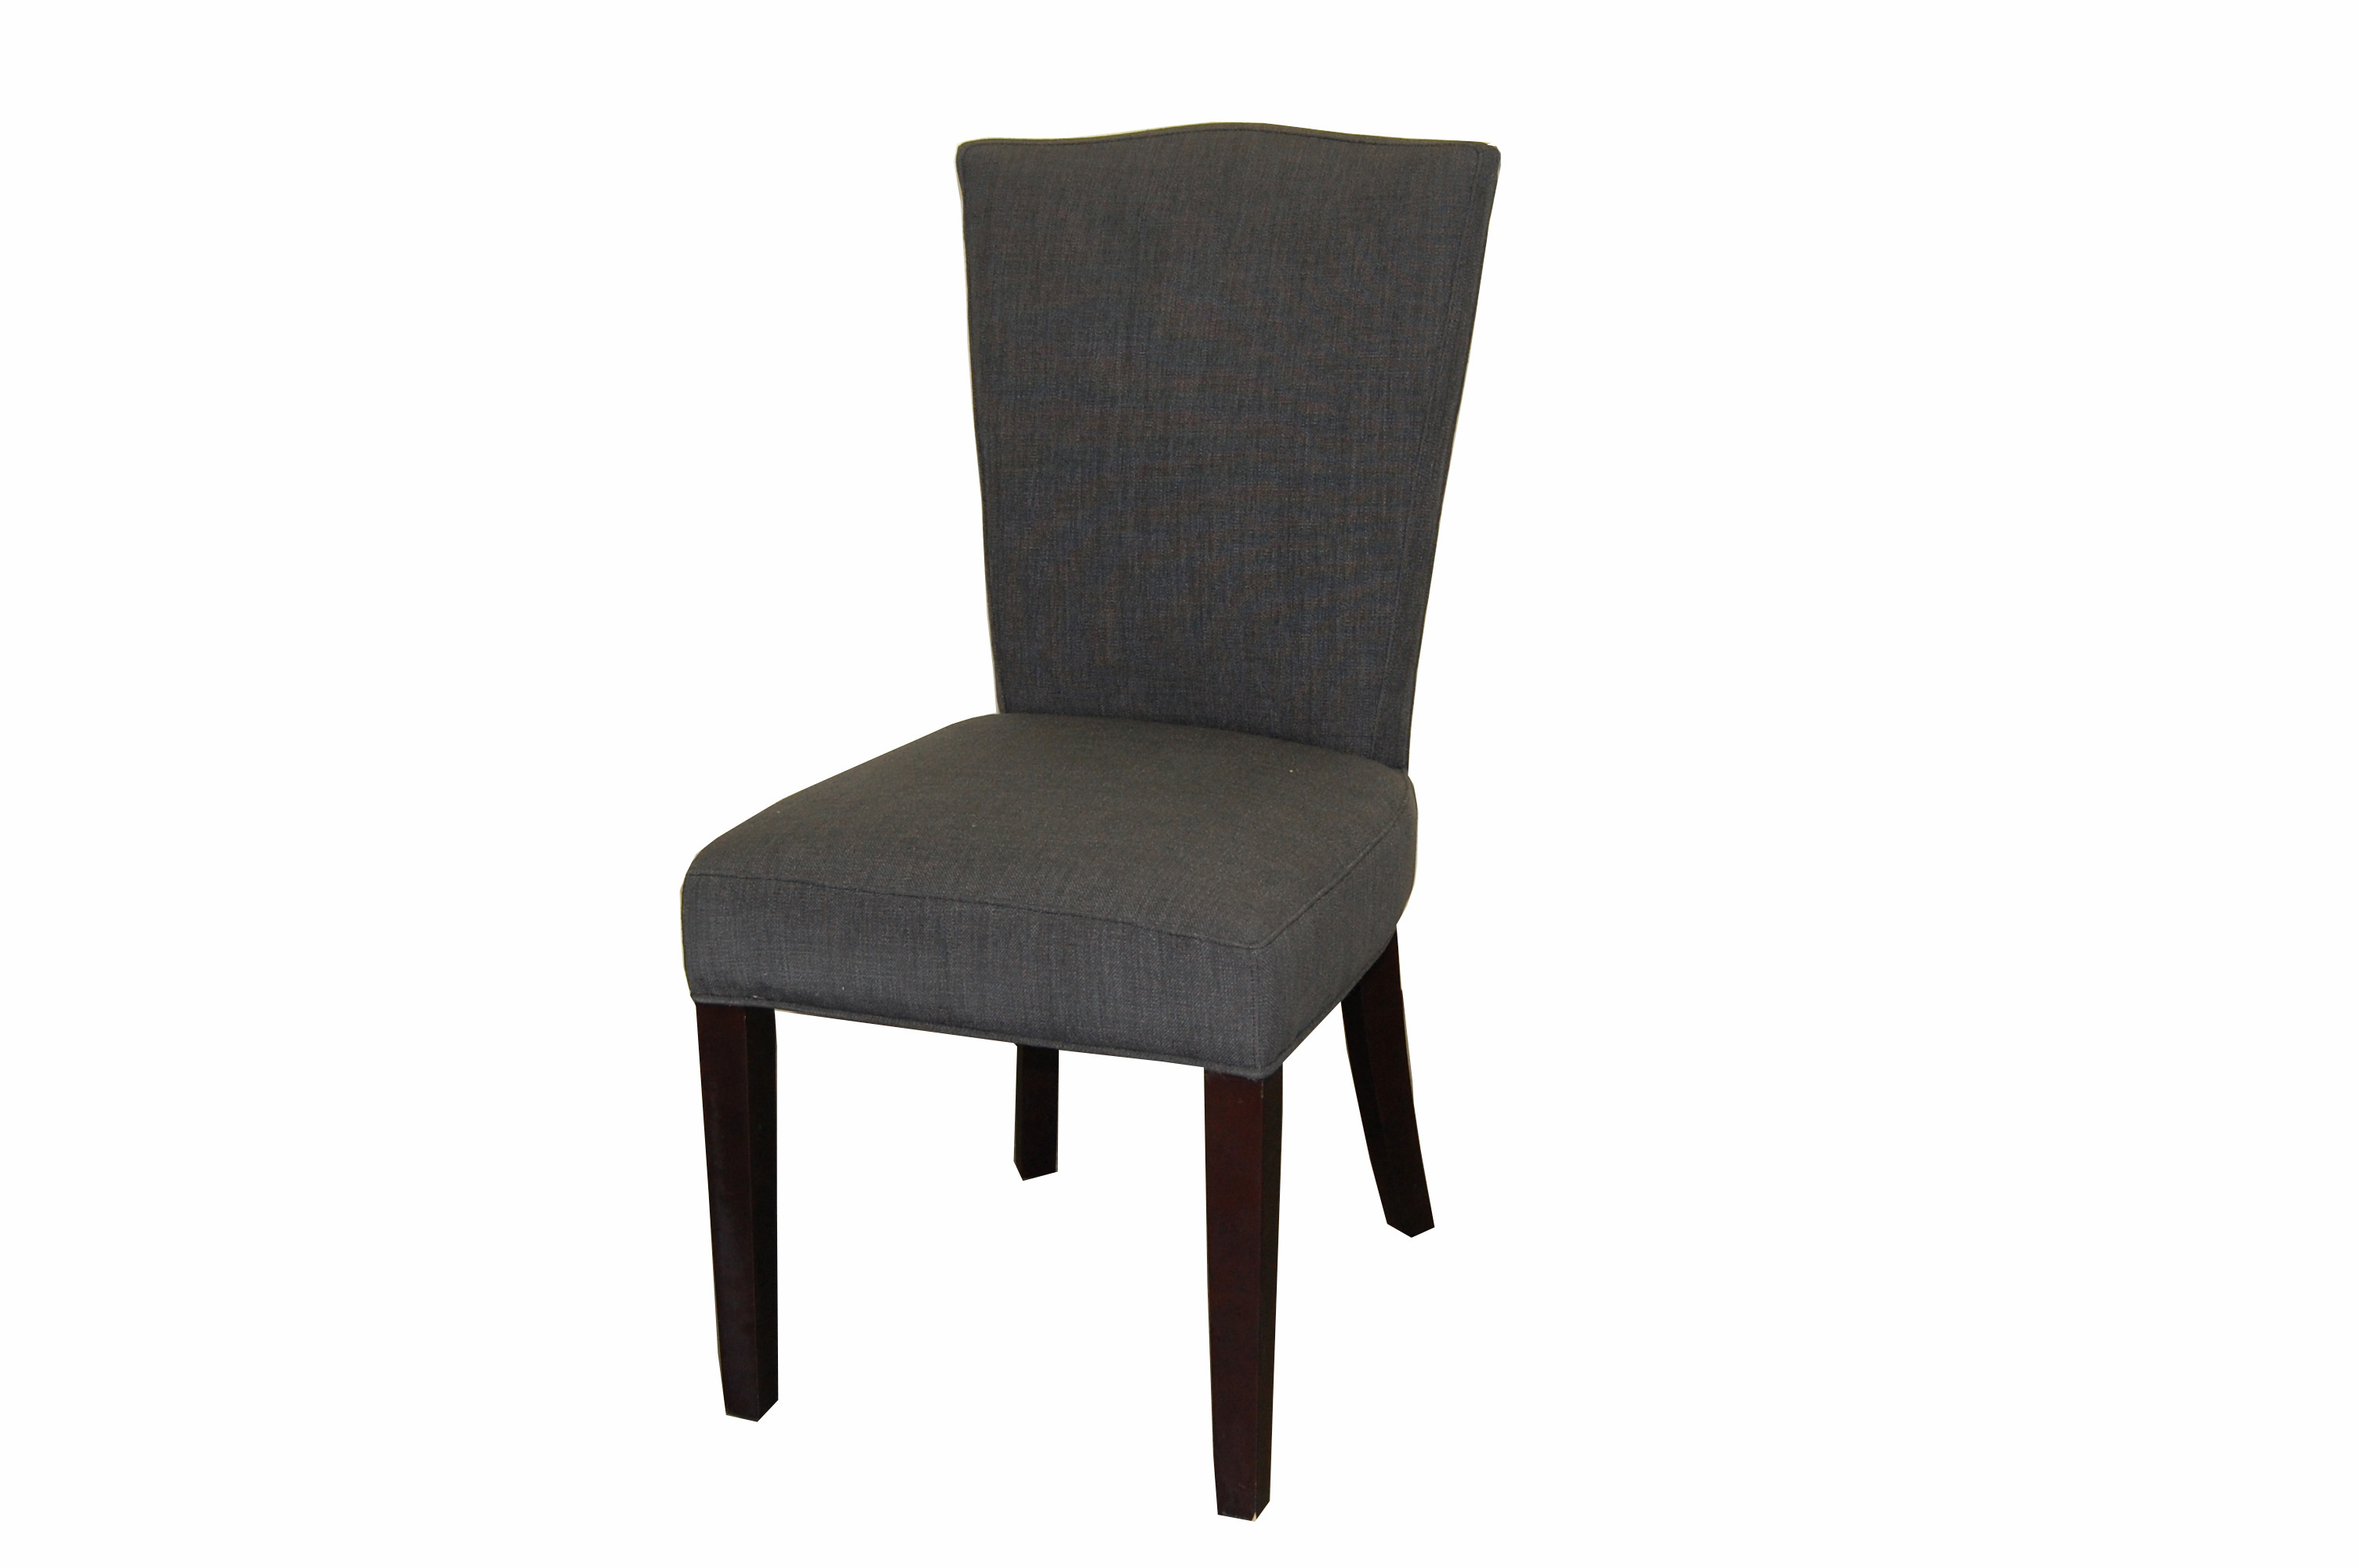 Dayton Dining Chair In Dark Charcoal Fabric  FAB168-11